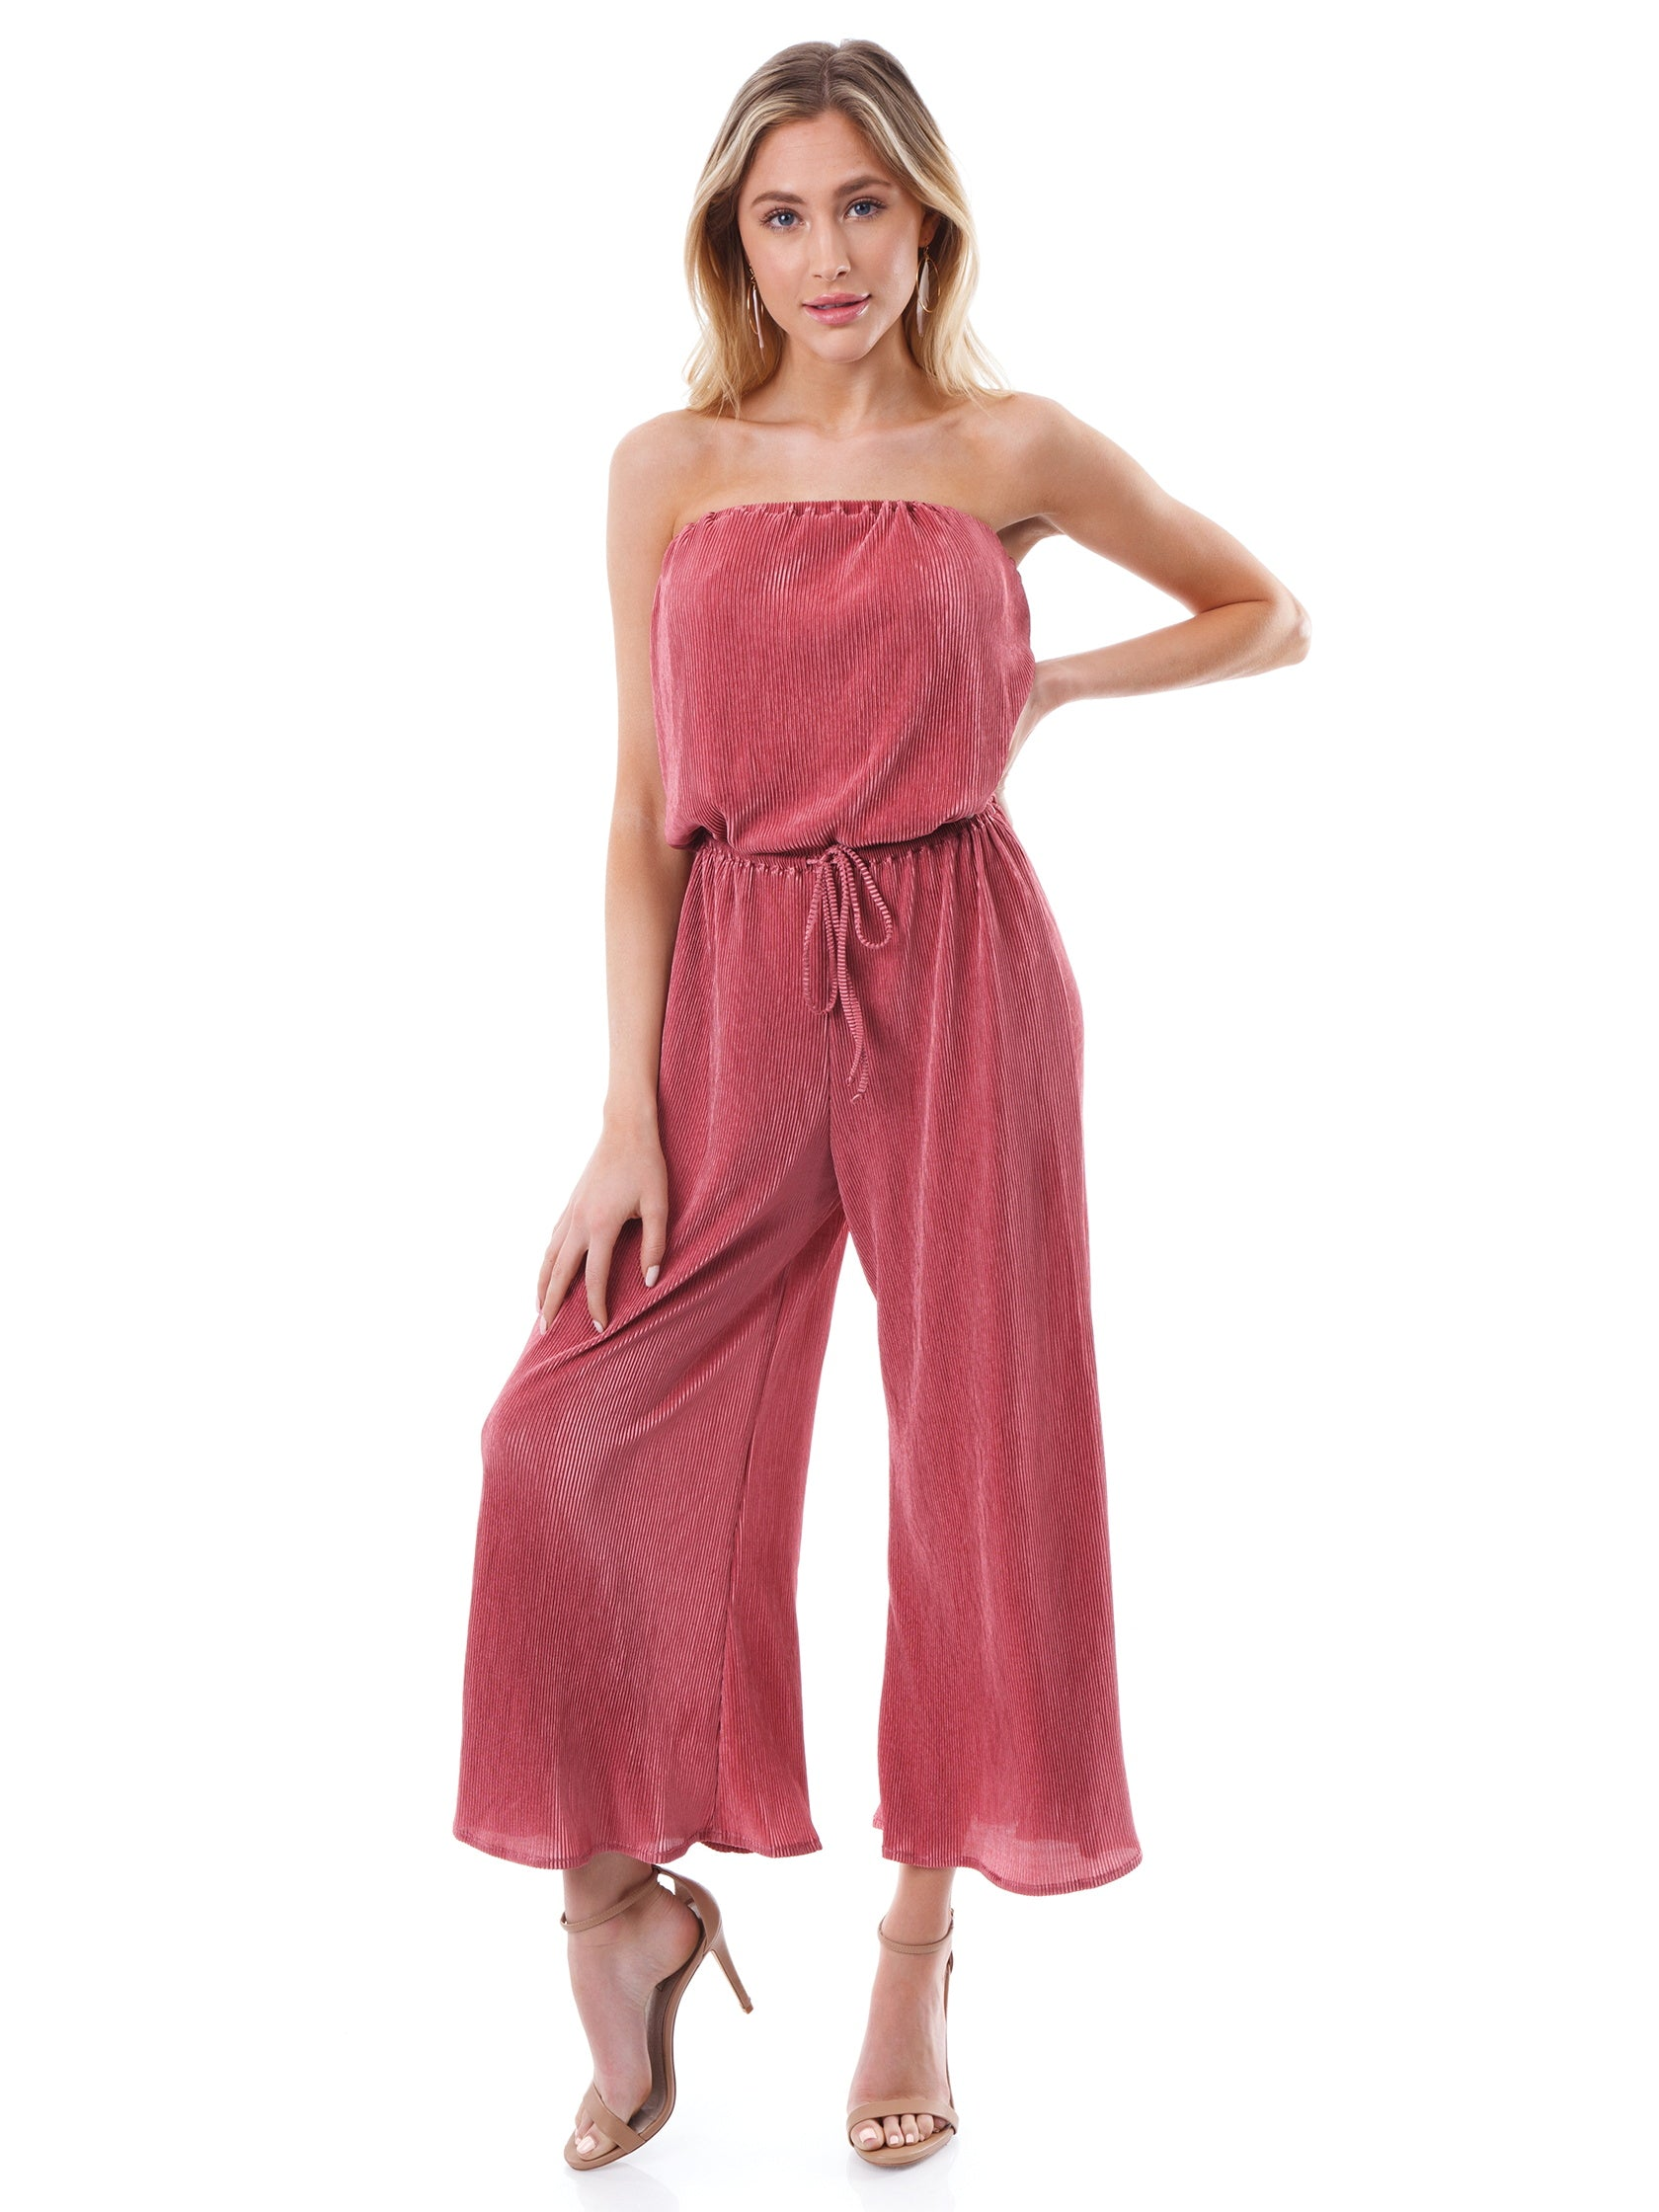 Girl outfit in a jumpsuit rental from Blue Life called Crystal Pleated Bell Jumper